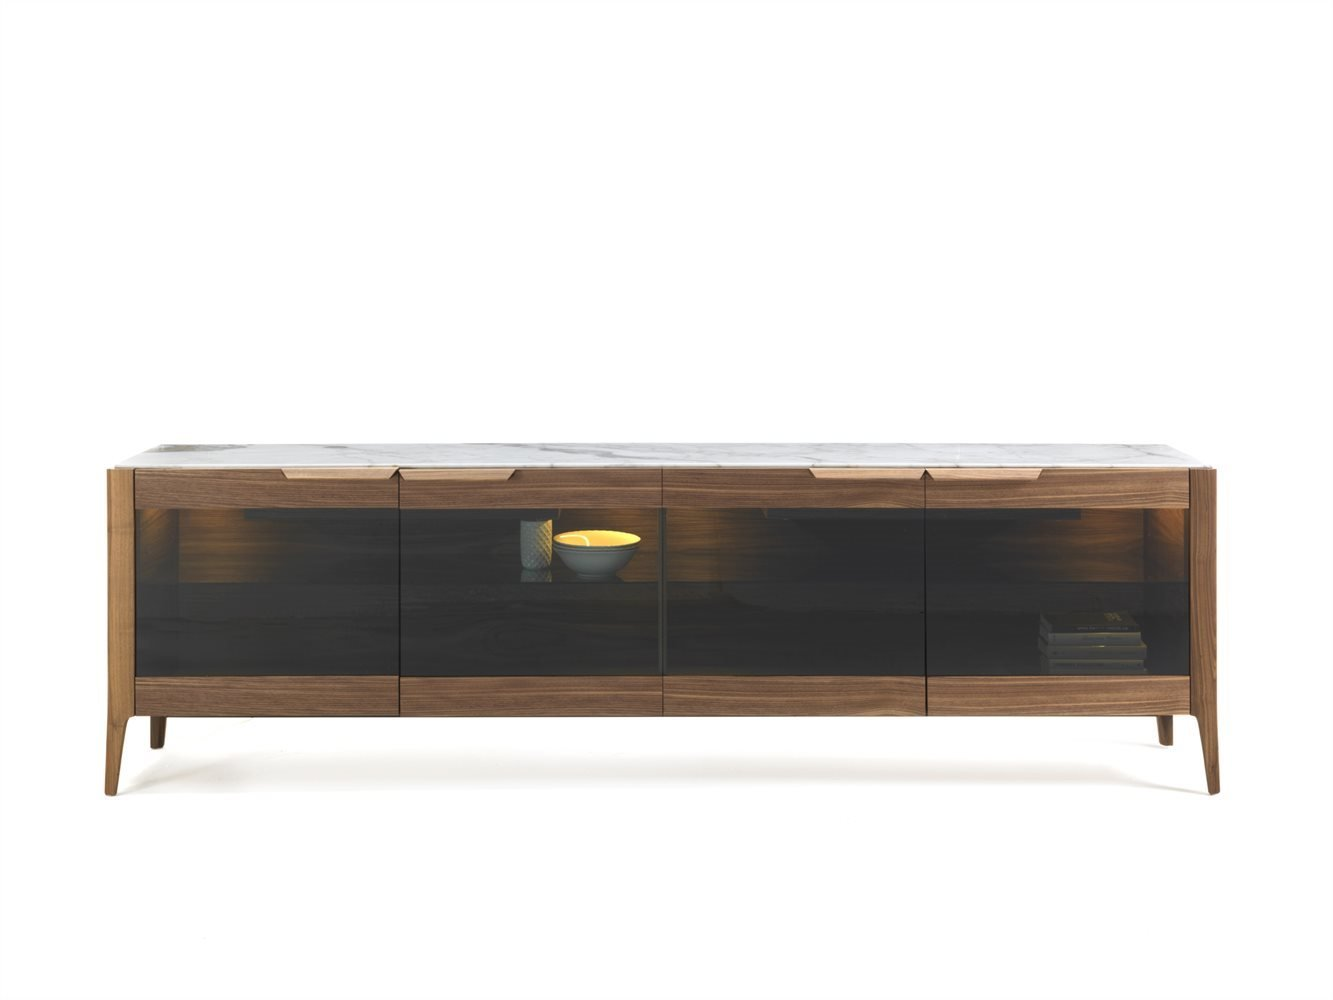 Atlante 5 Sideboard cabinet from Porada